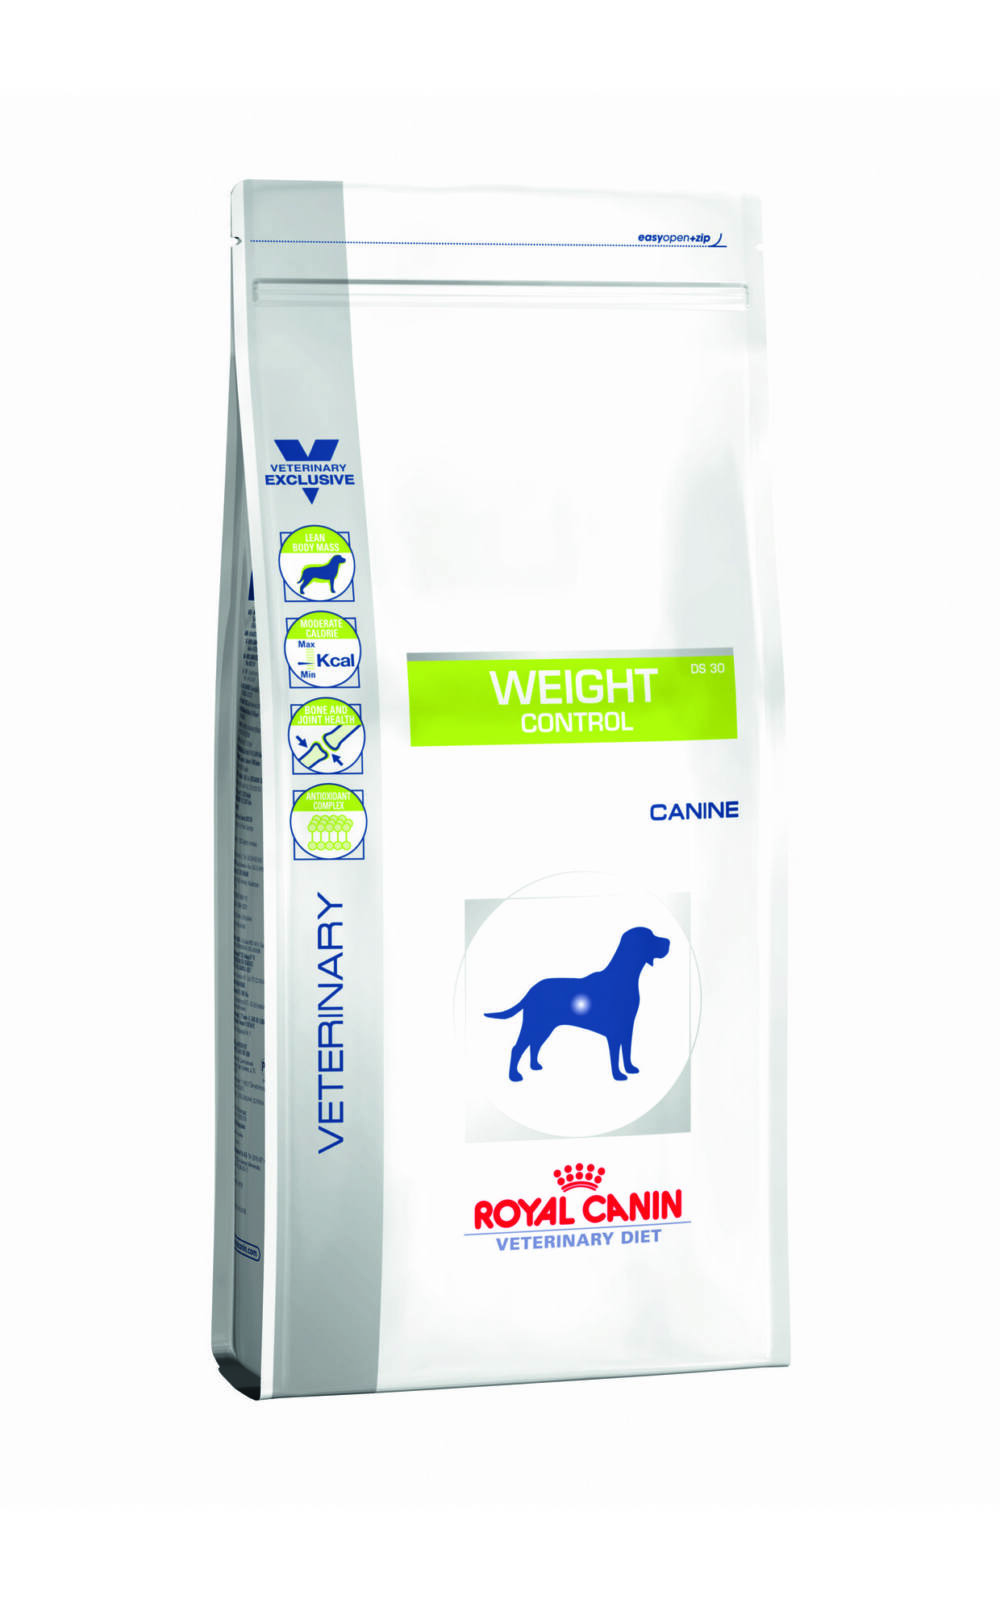 Royal Canin Gastro >> Royal Canin Weight Control 5 kg - Feed - EURO-VET Webshop